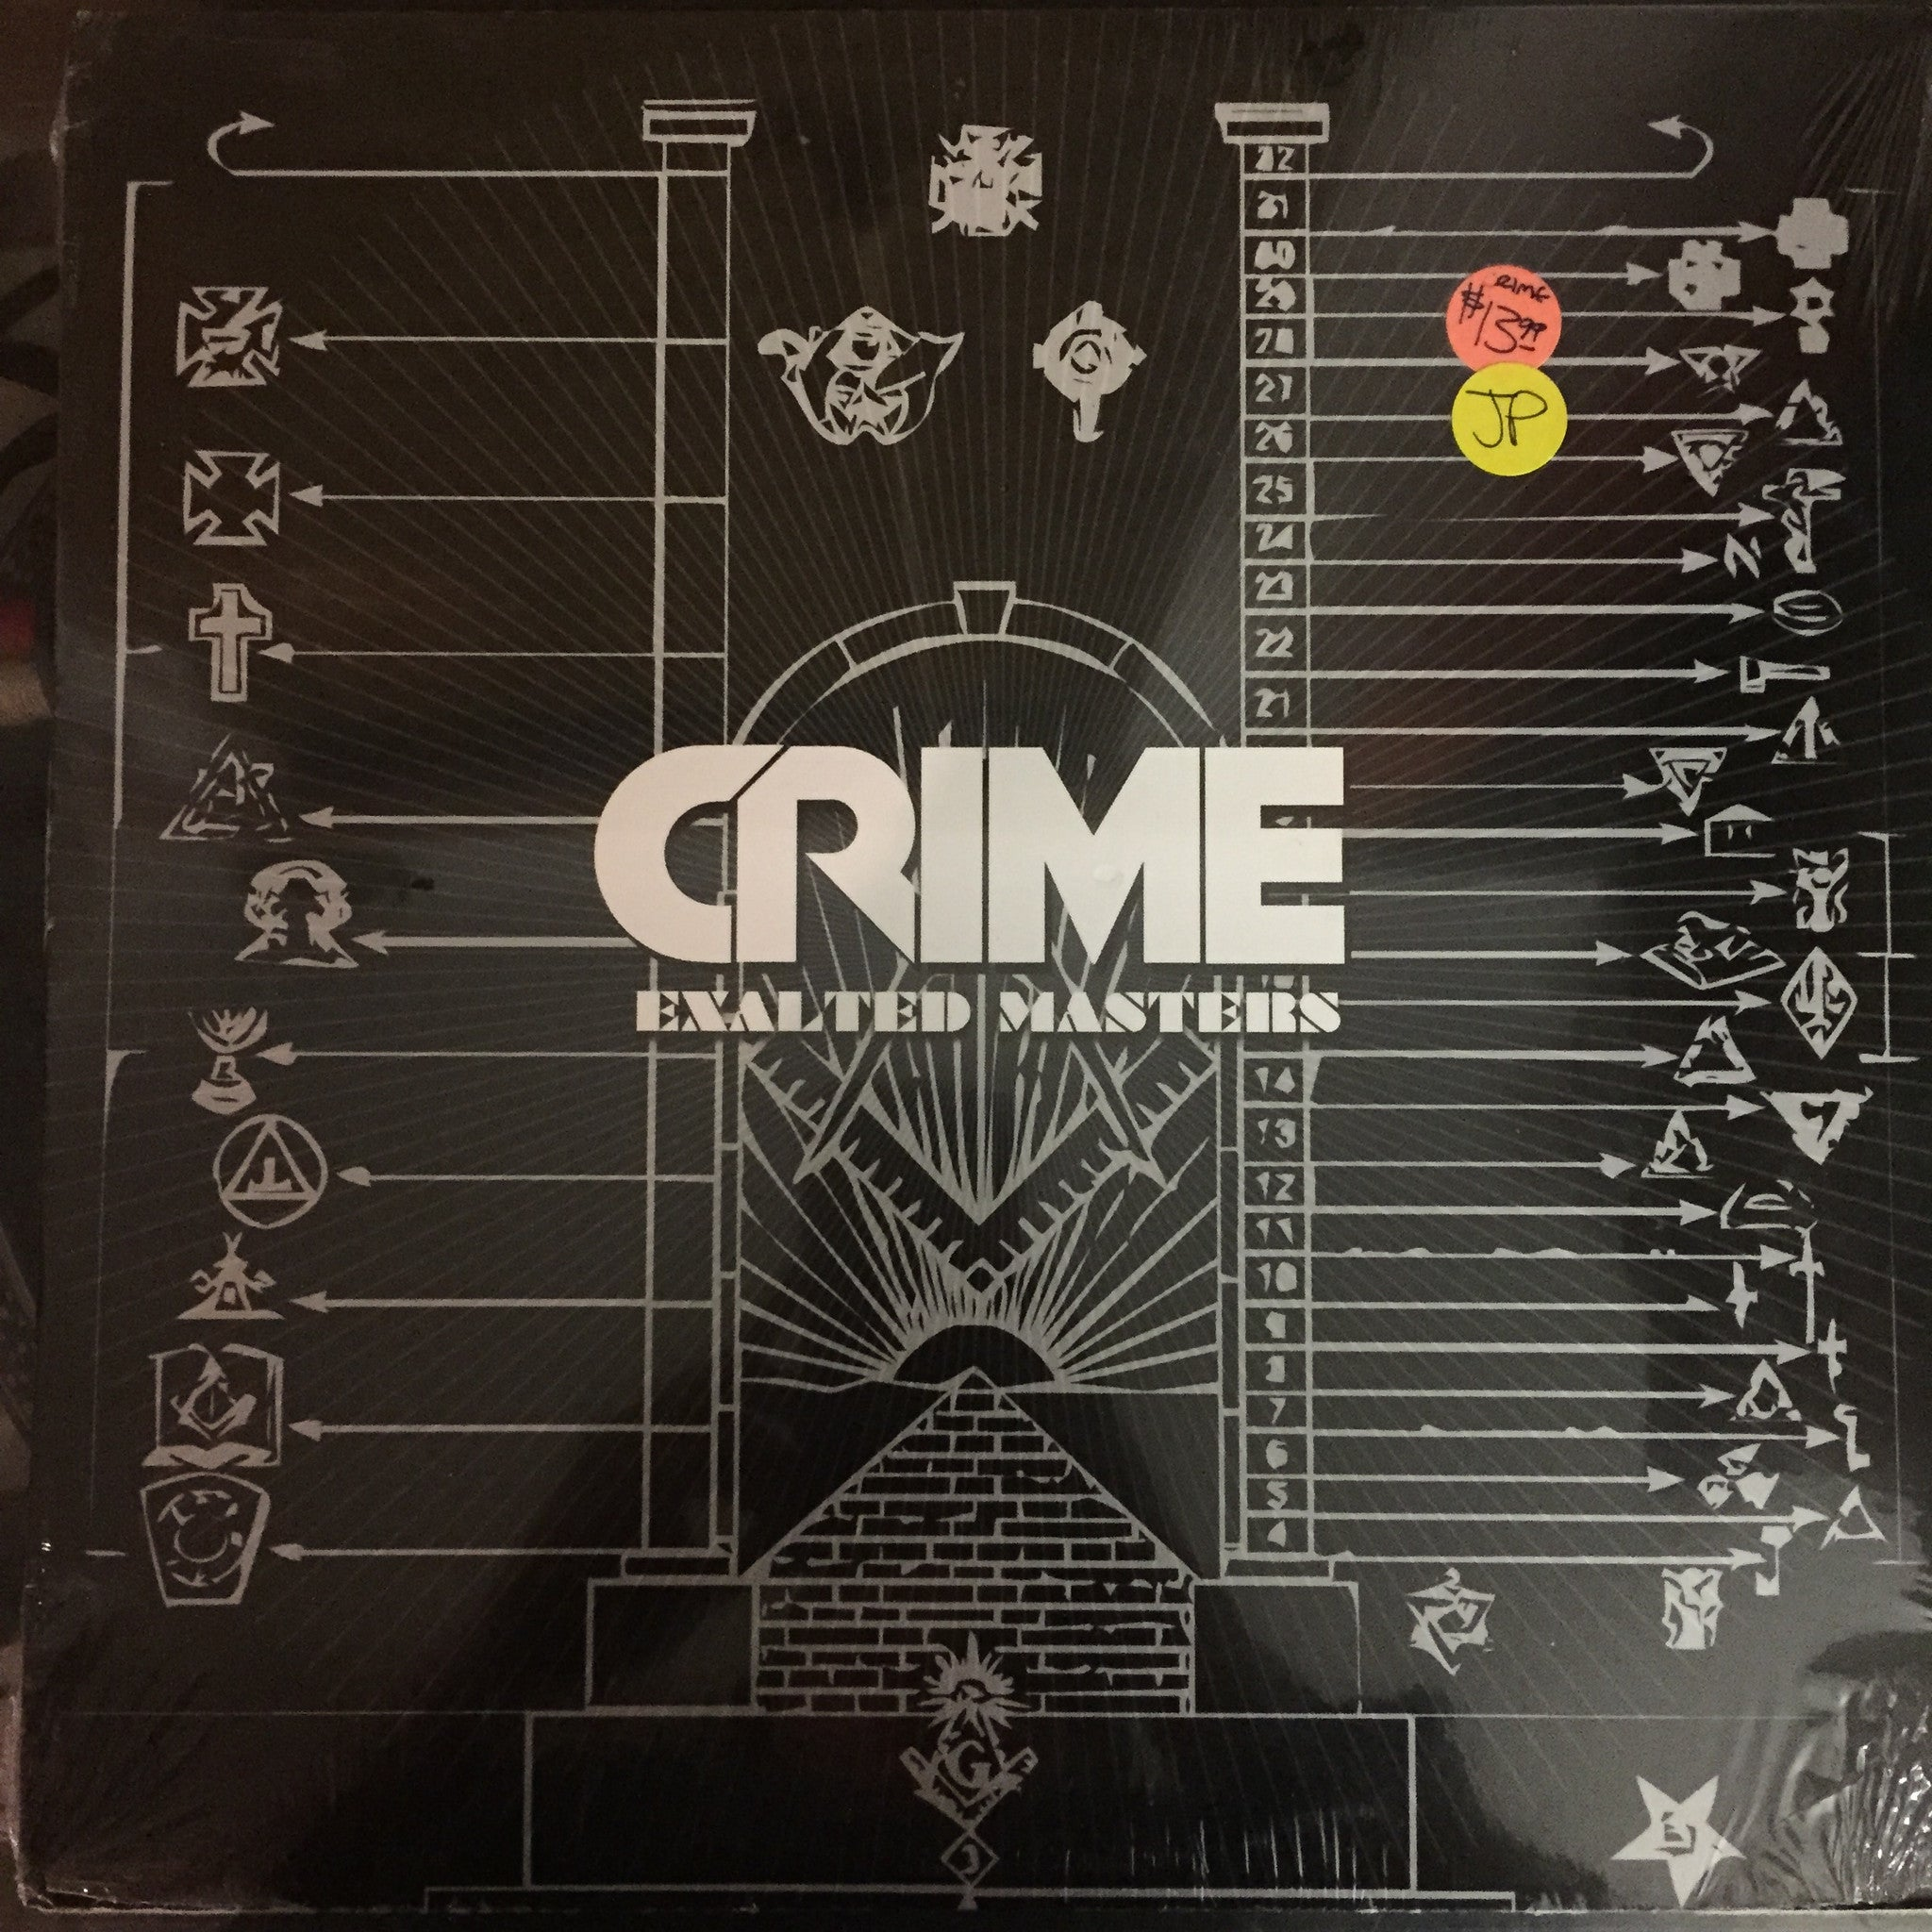 What is the object of crime